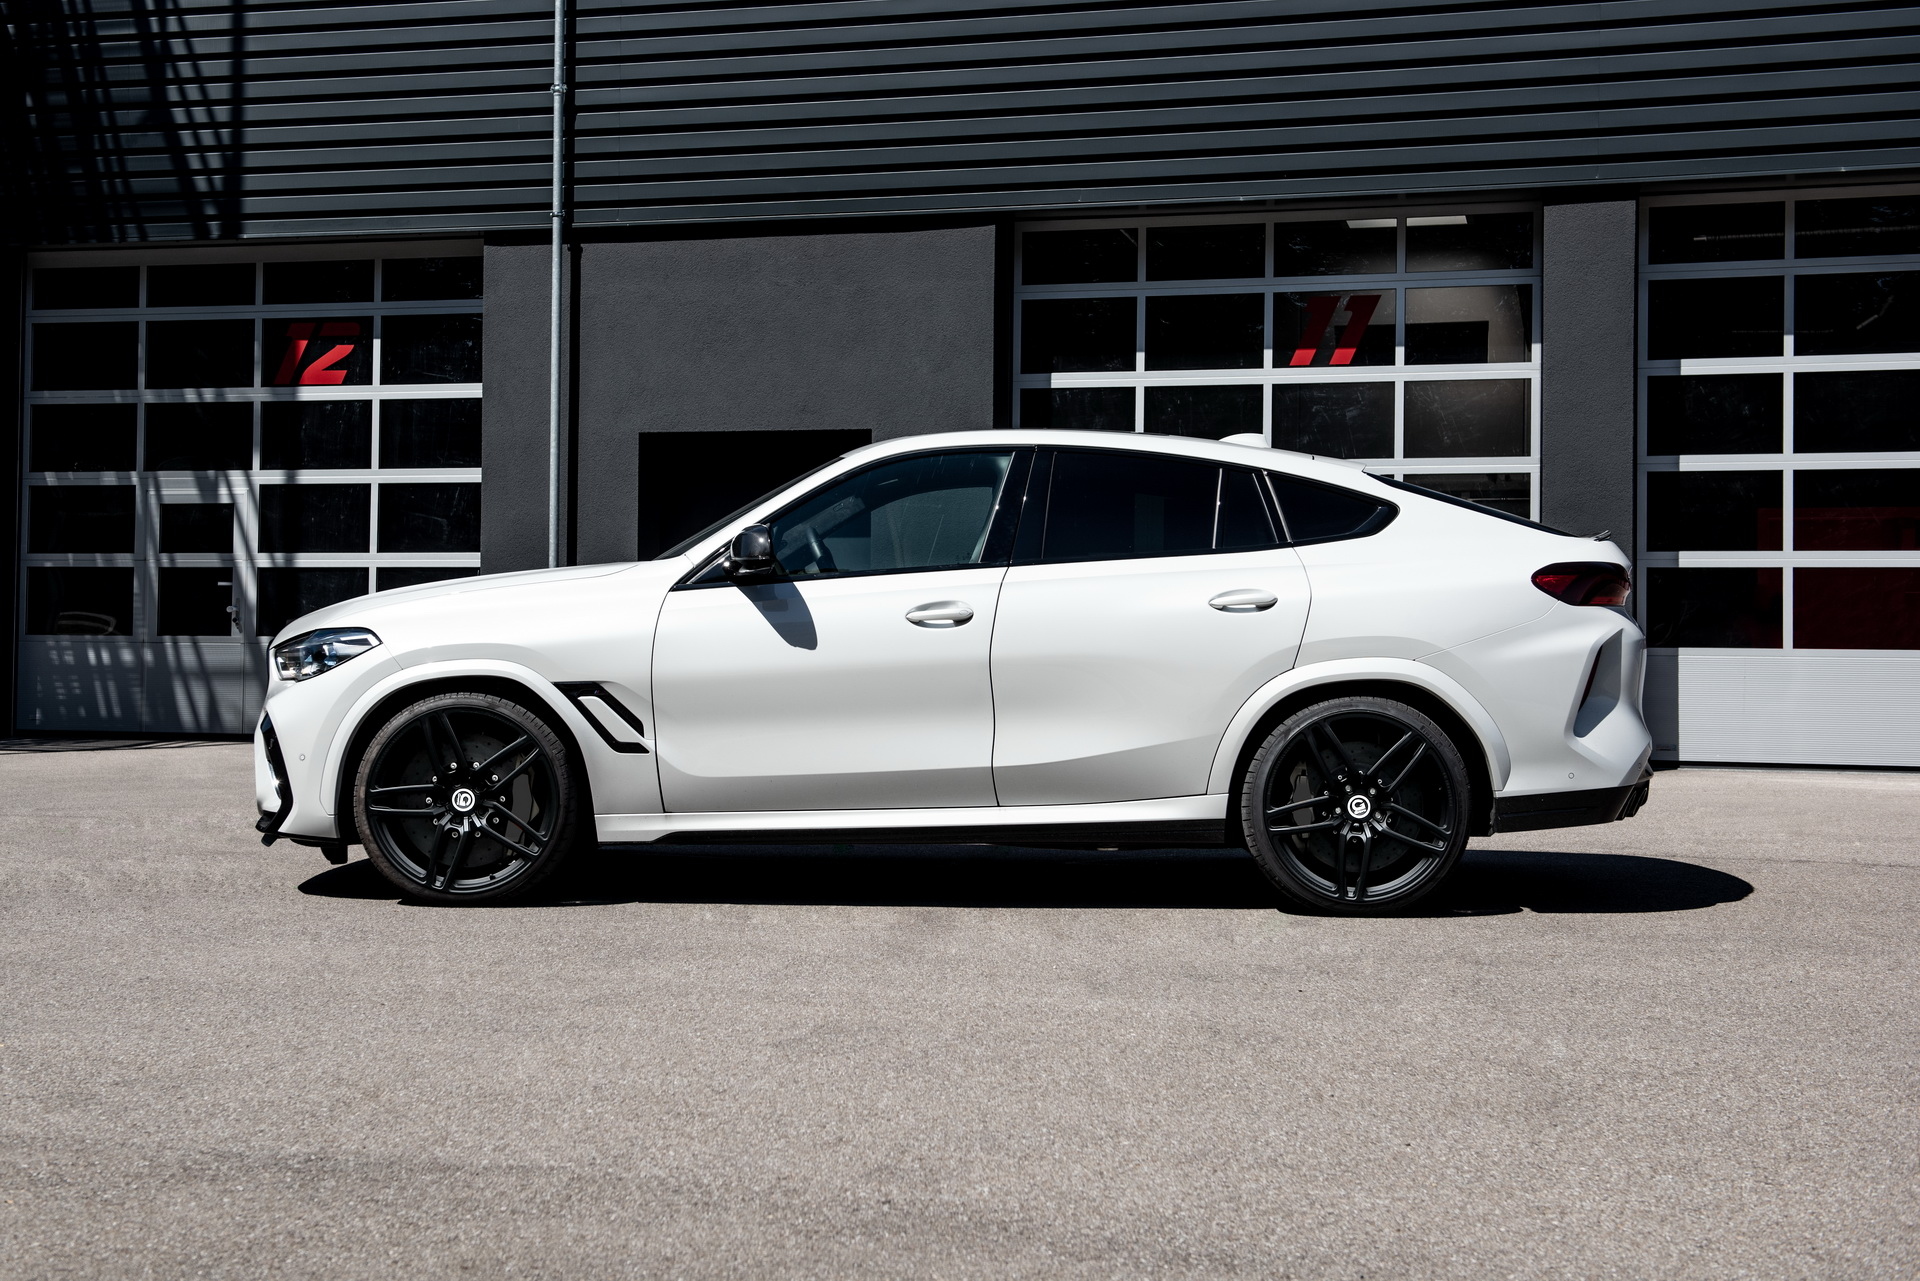 1614811671 737 Beyond the X6M 789 horsepower for the BMW X6 Tuning Beyond the X6M; 789 horsepower for the BMW X6 Tuning G-Power 2